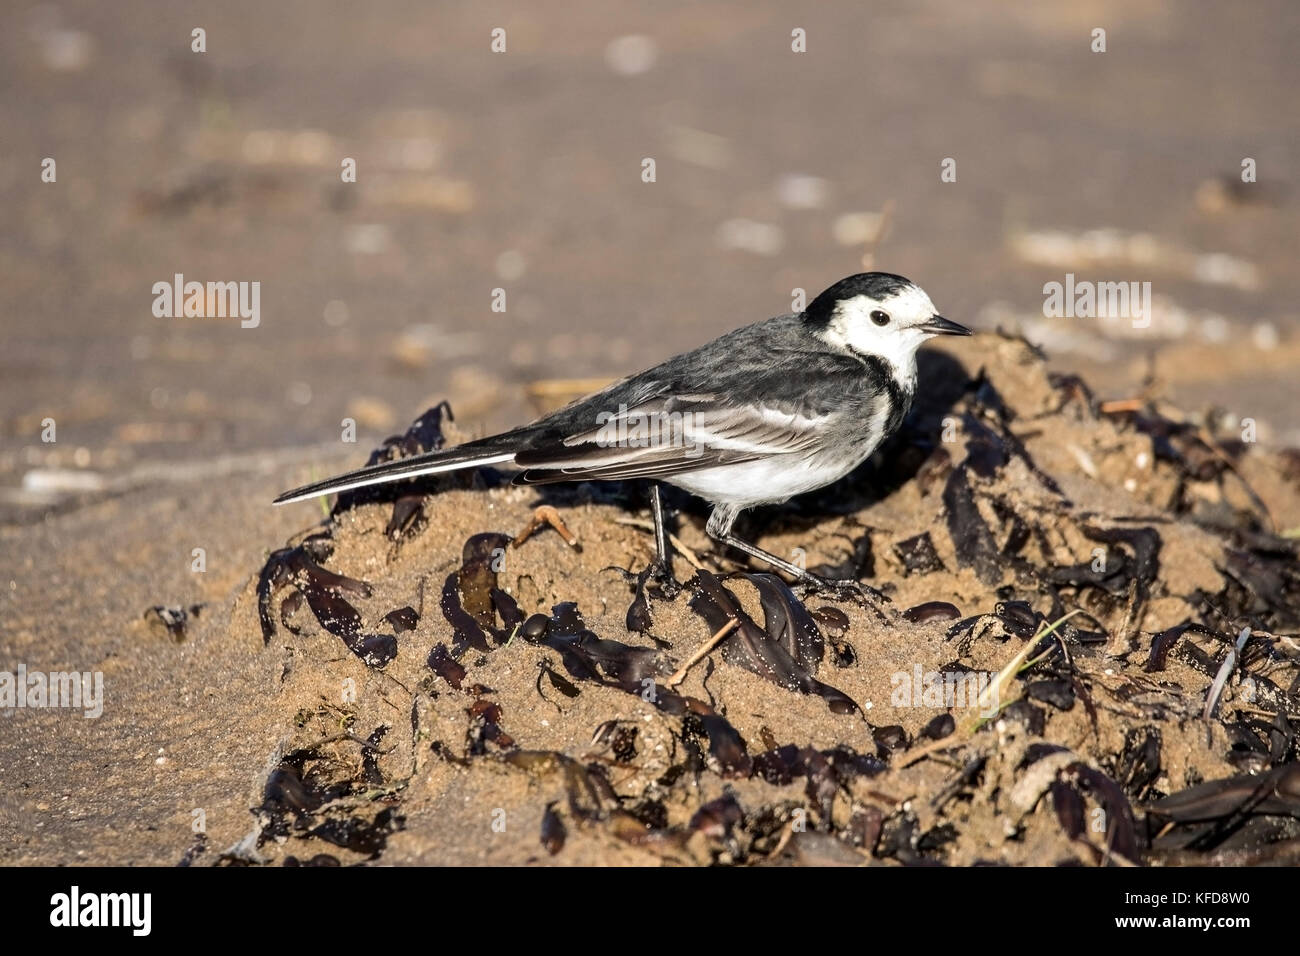 Pied wagtail, A small passerine bird searching for food on the shores of Southport beach in Merseyside - Stock Image